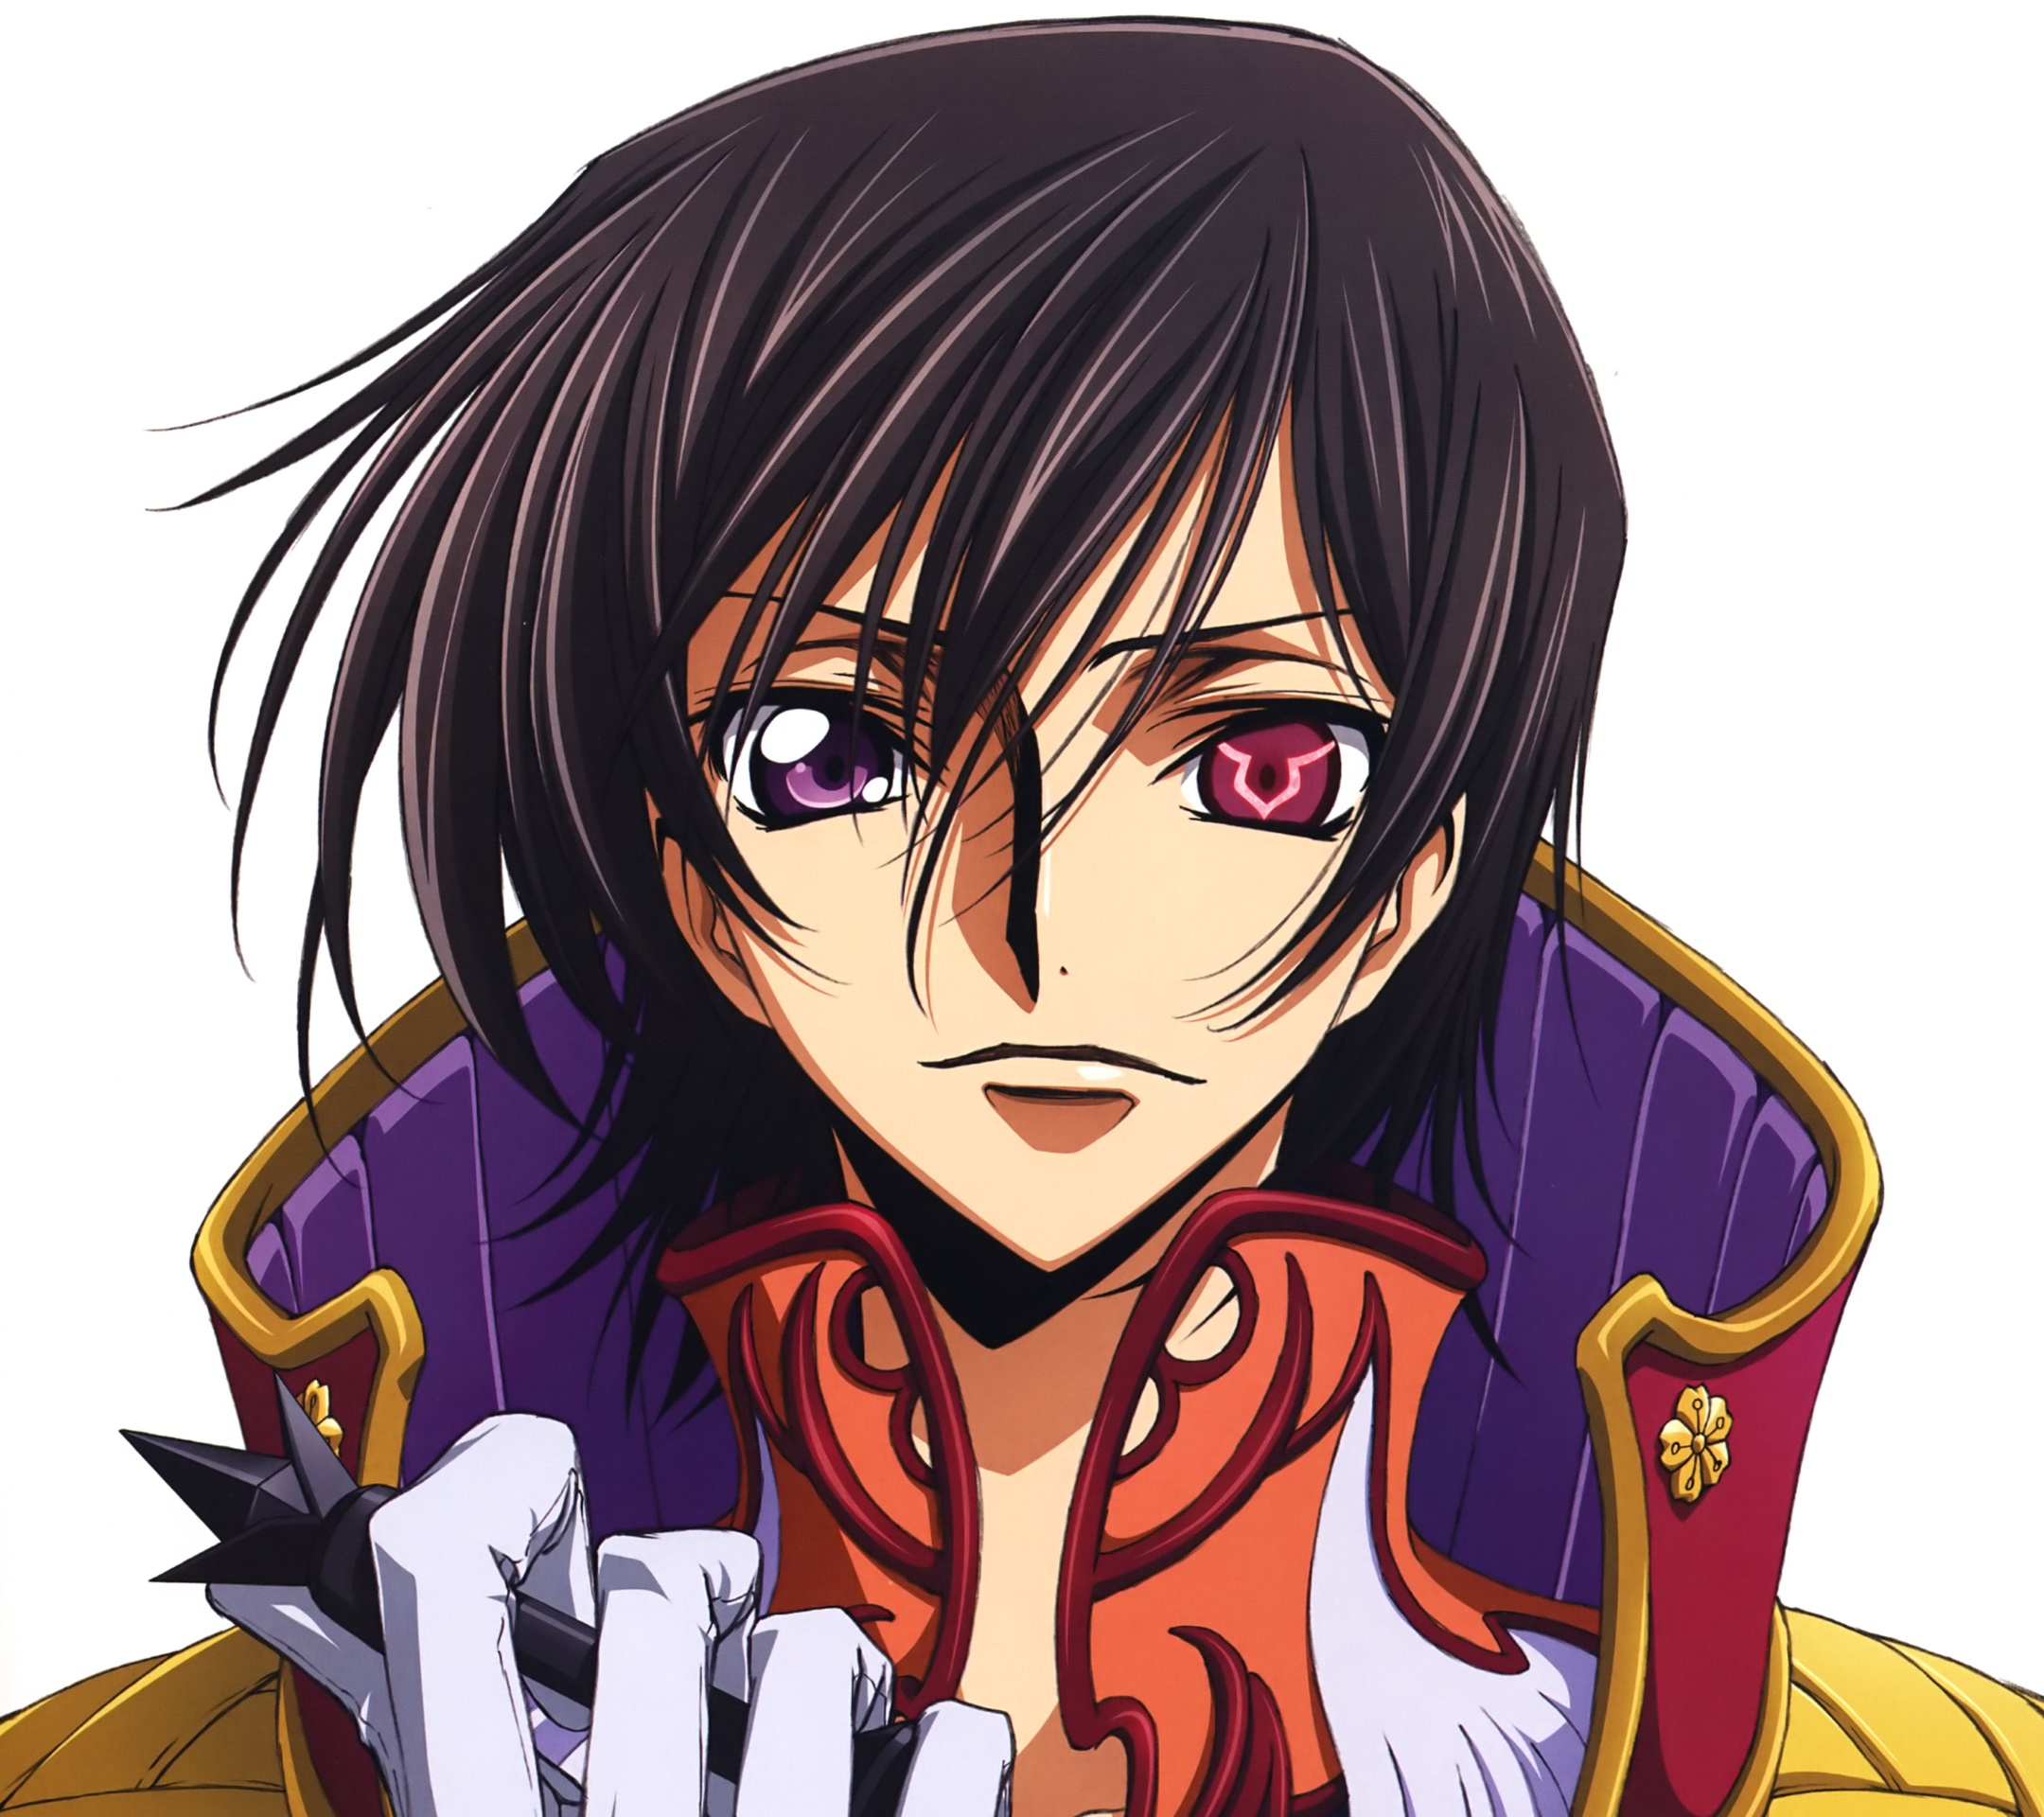 Code Geass Lelouch Lamperouge.Android wallpaper 2160x1920